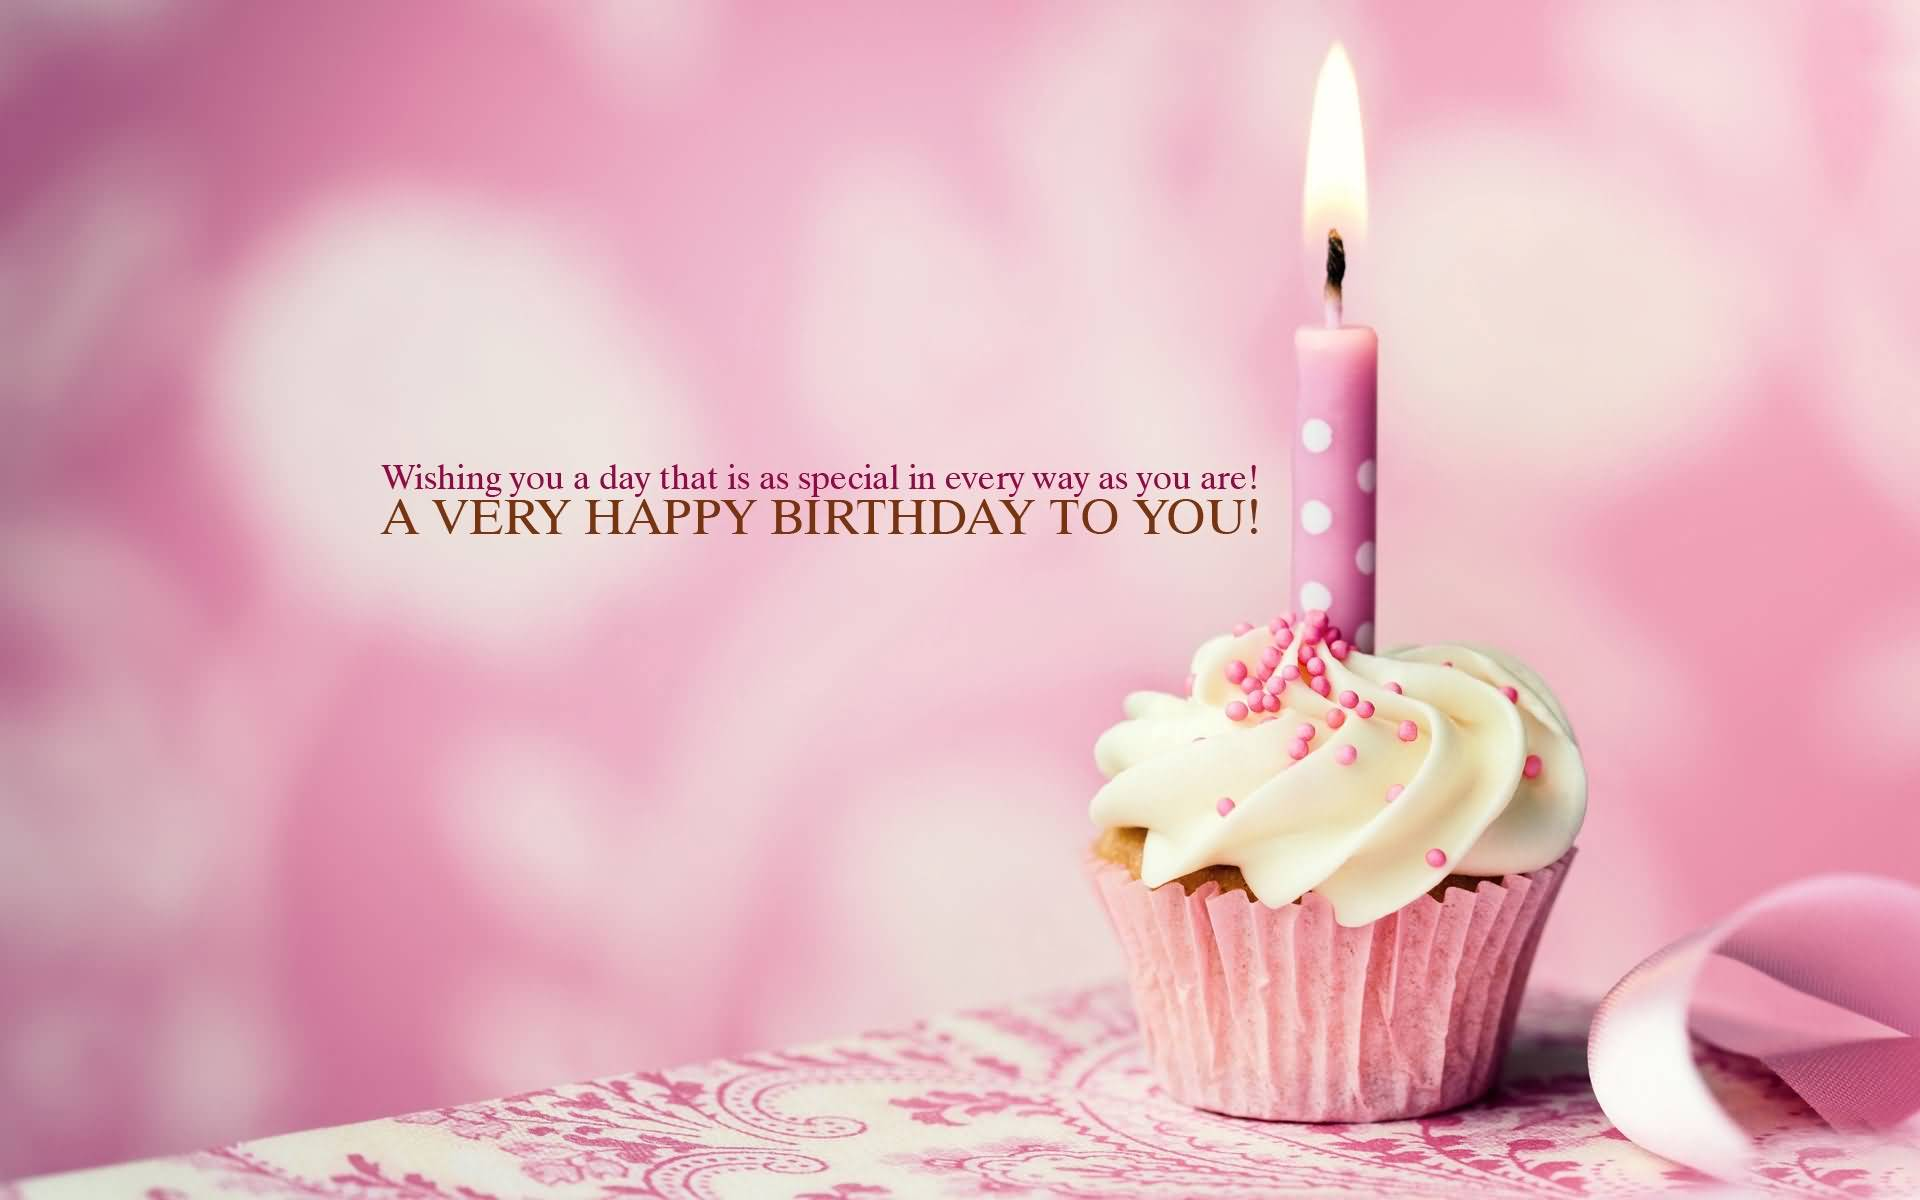 Happy Birthday Sayings wishing you a day that is as special